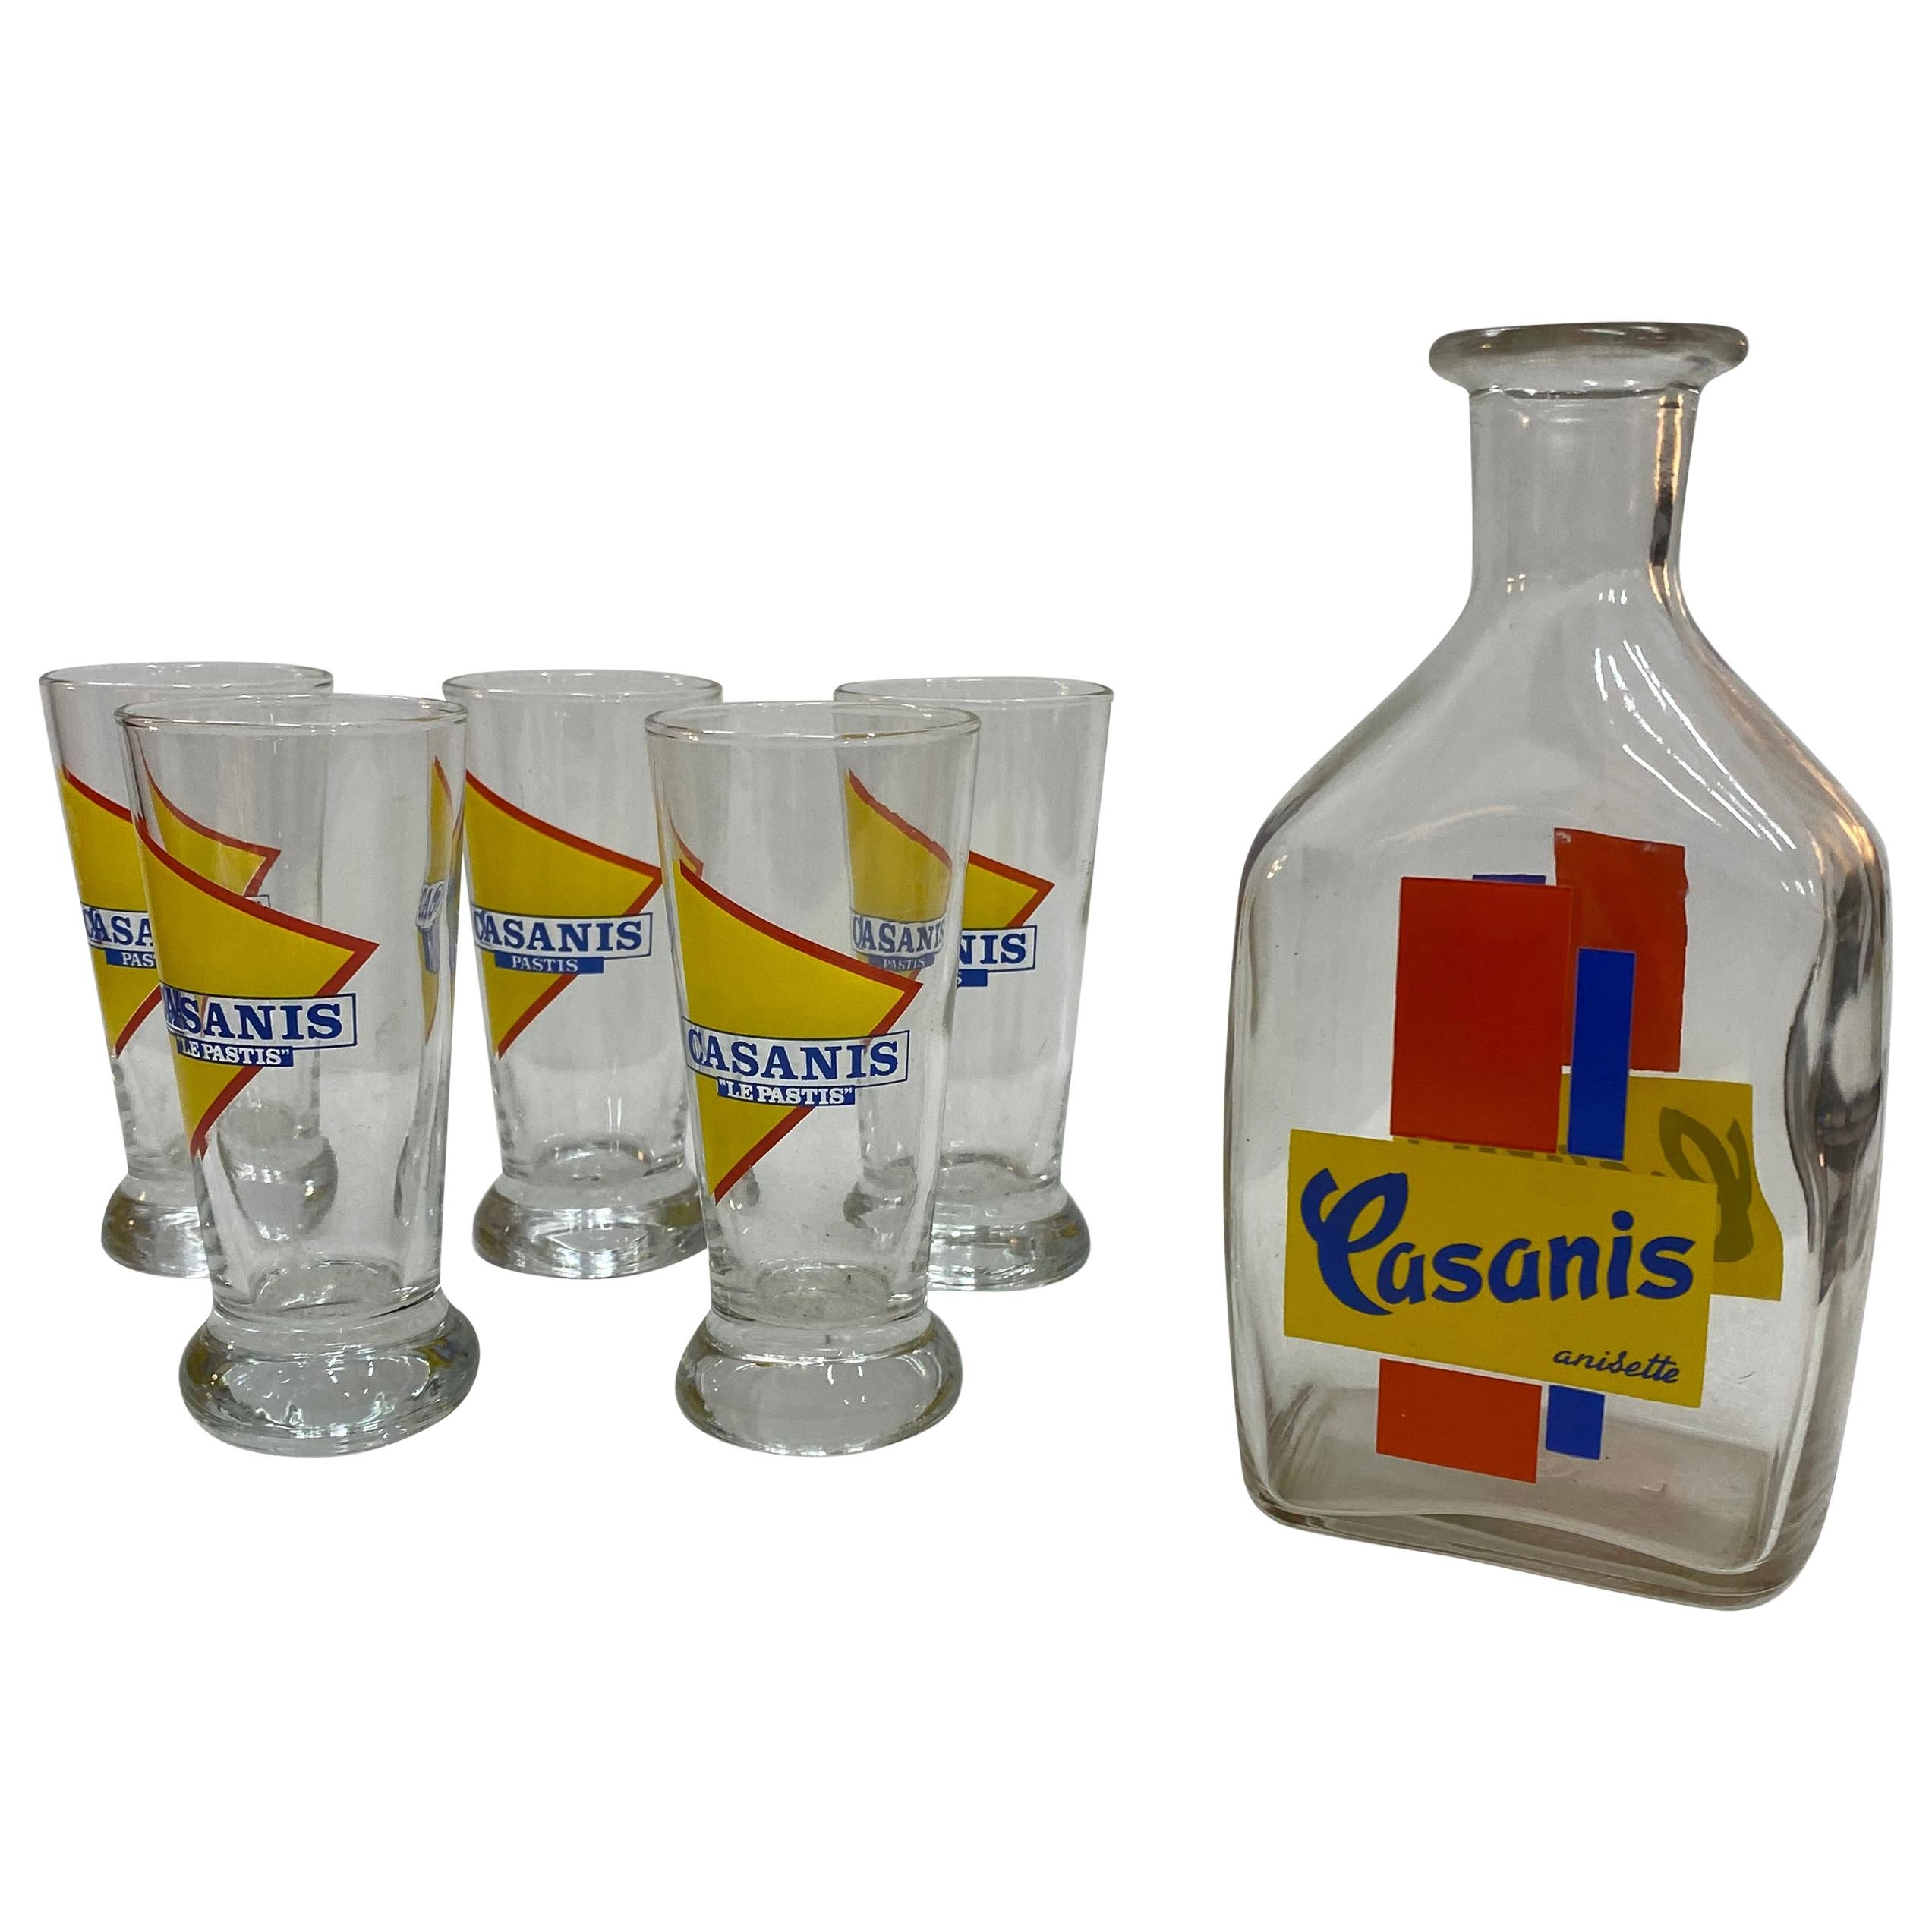 Set of Casanis Antisette Liqueur Glasses and Water Decanter